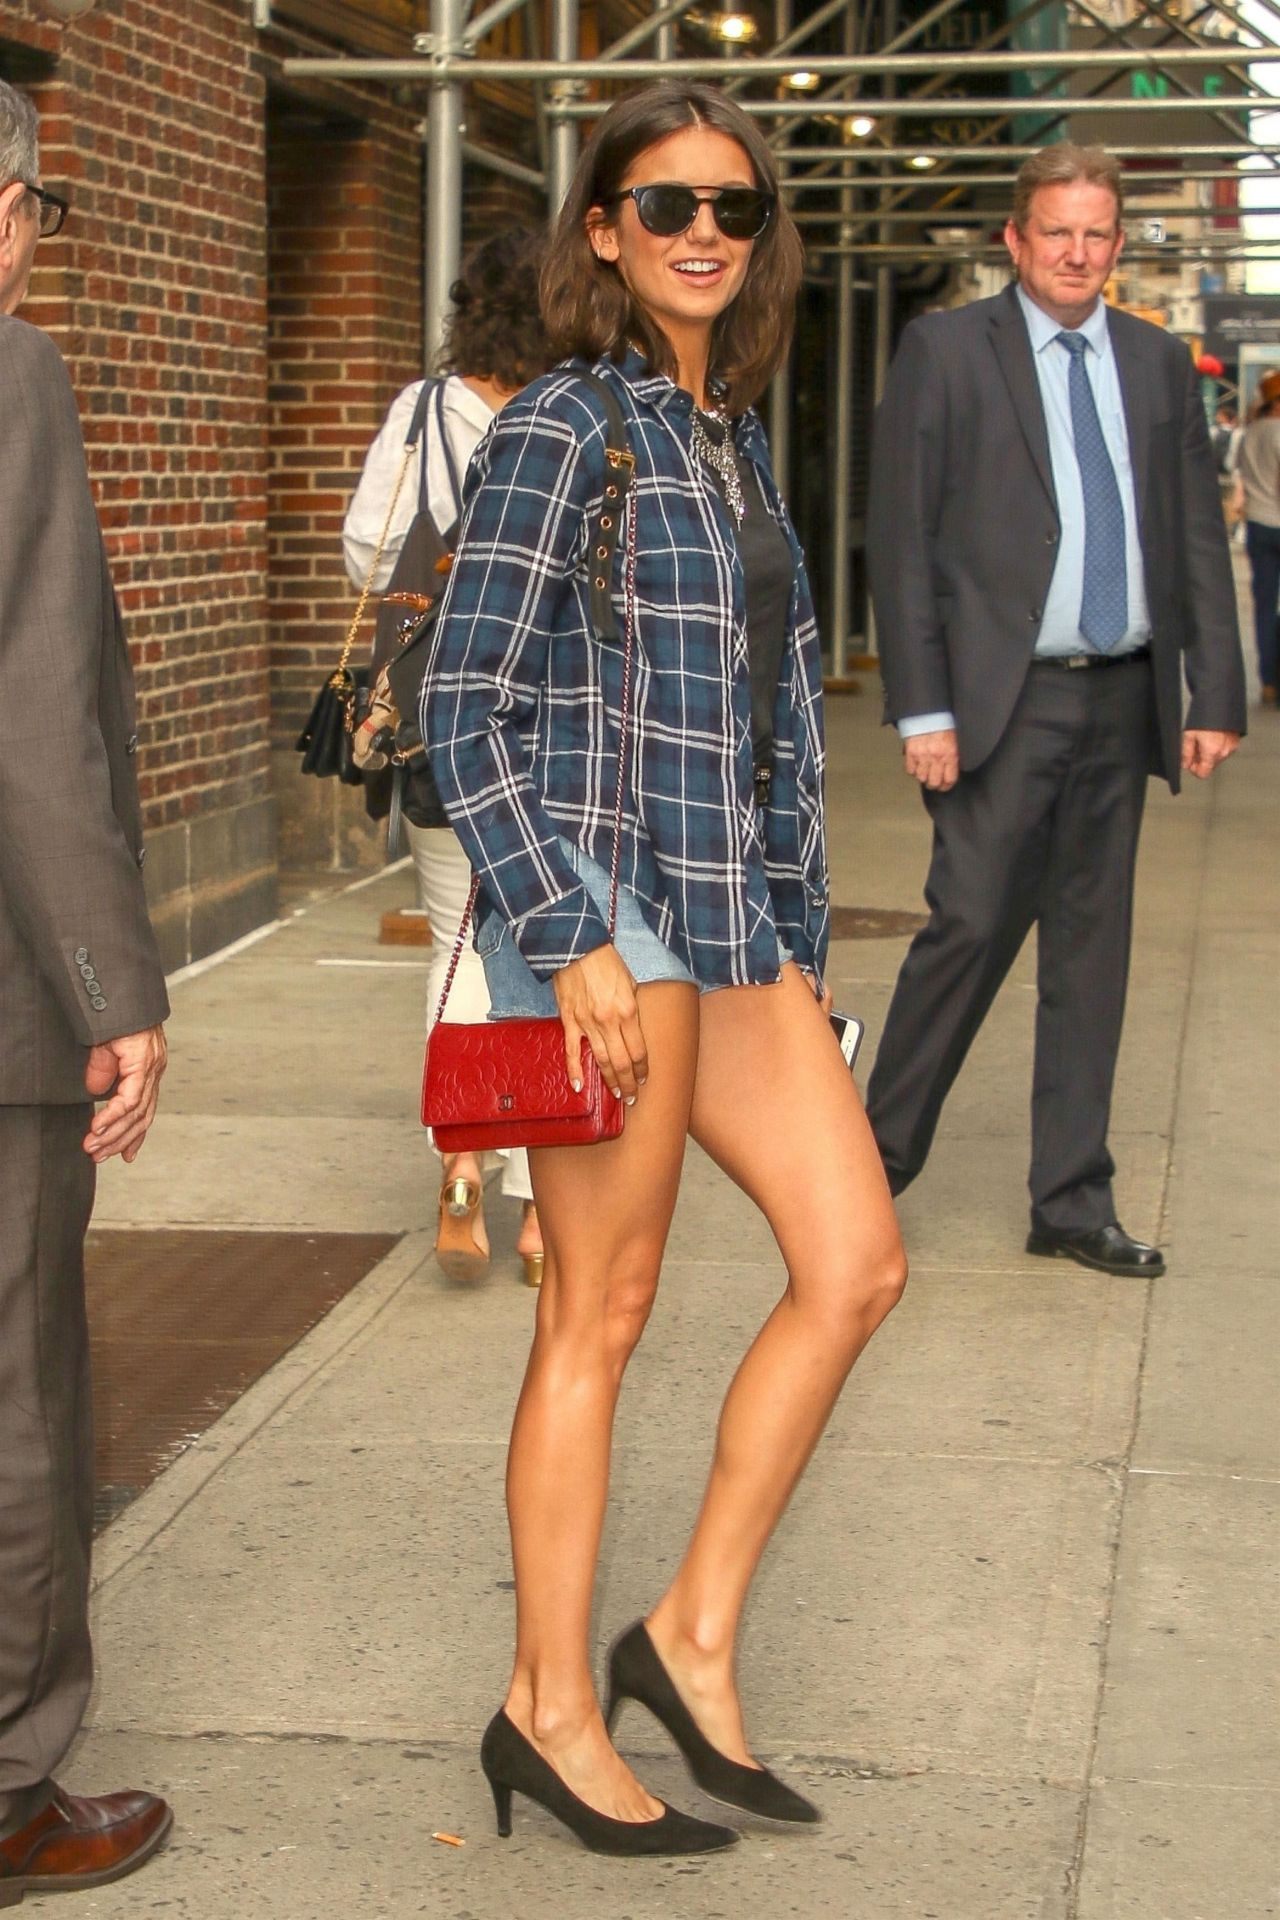 https://celebmafia.com/wp-content/uploads/2018/08/nina-dobrev-leaves-the-late-show-with-stephen-colbert-08-08-2018-12.jpg